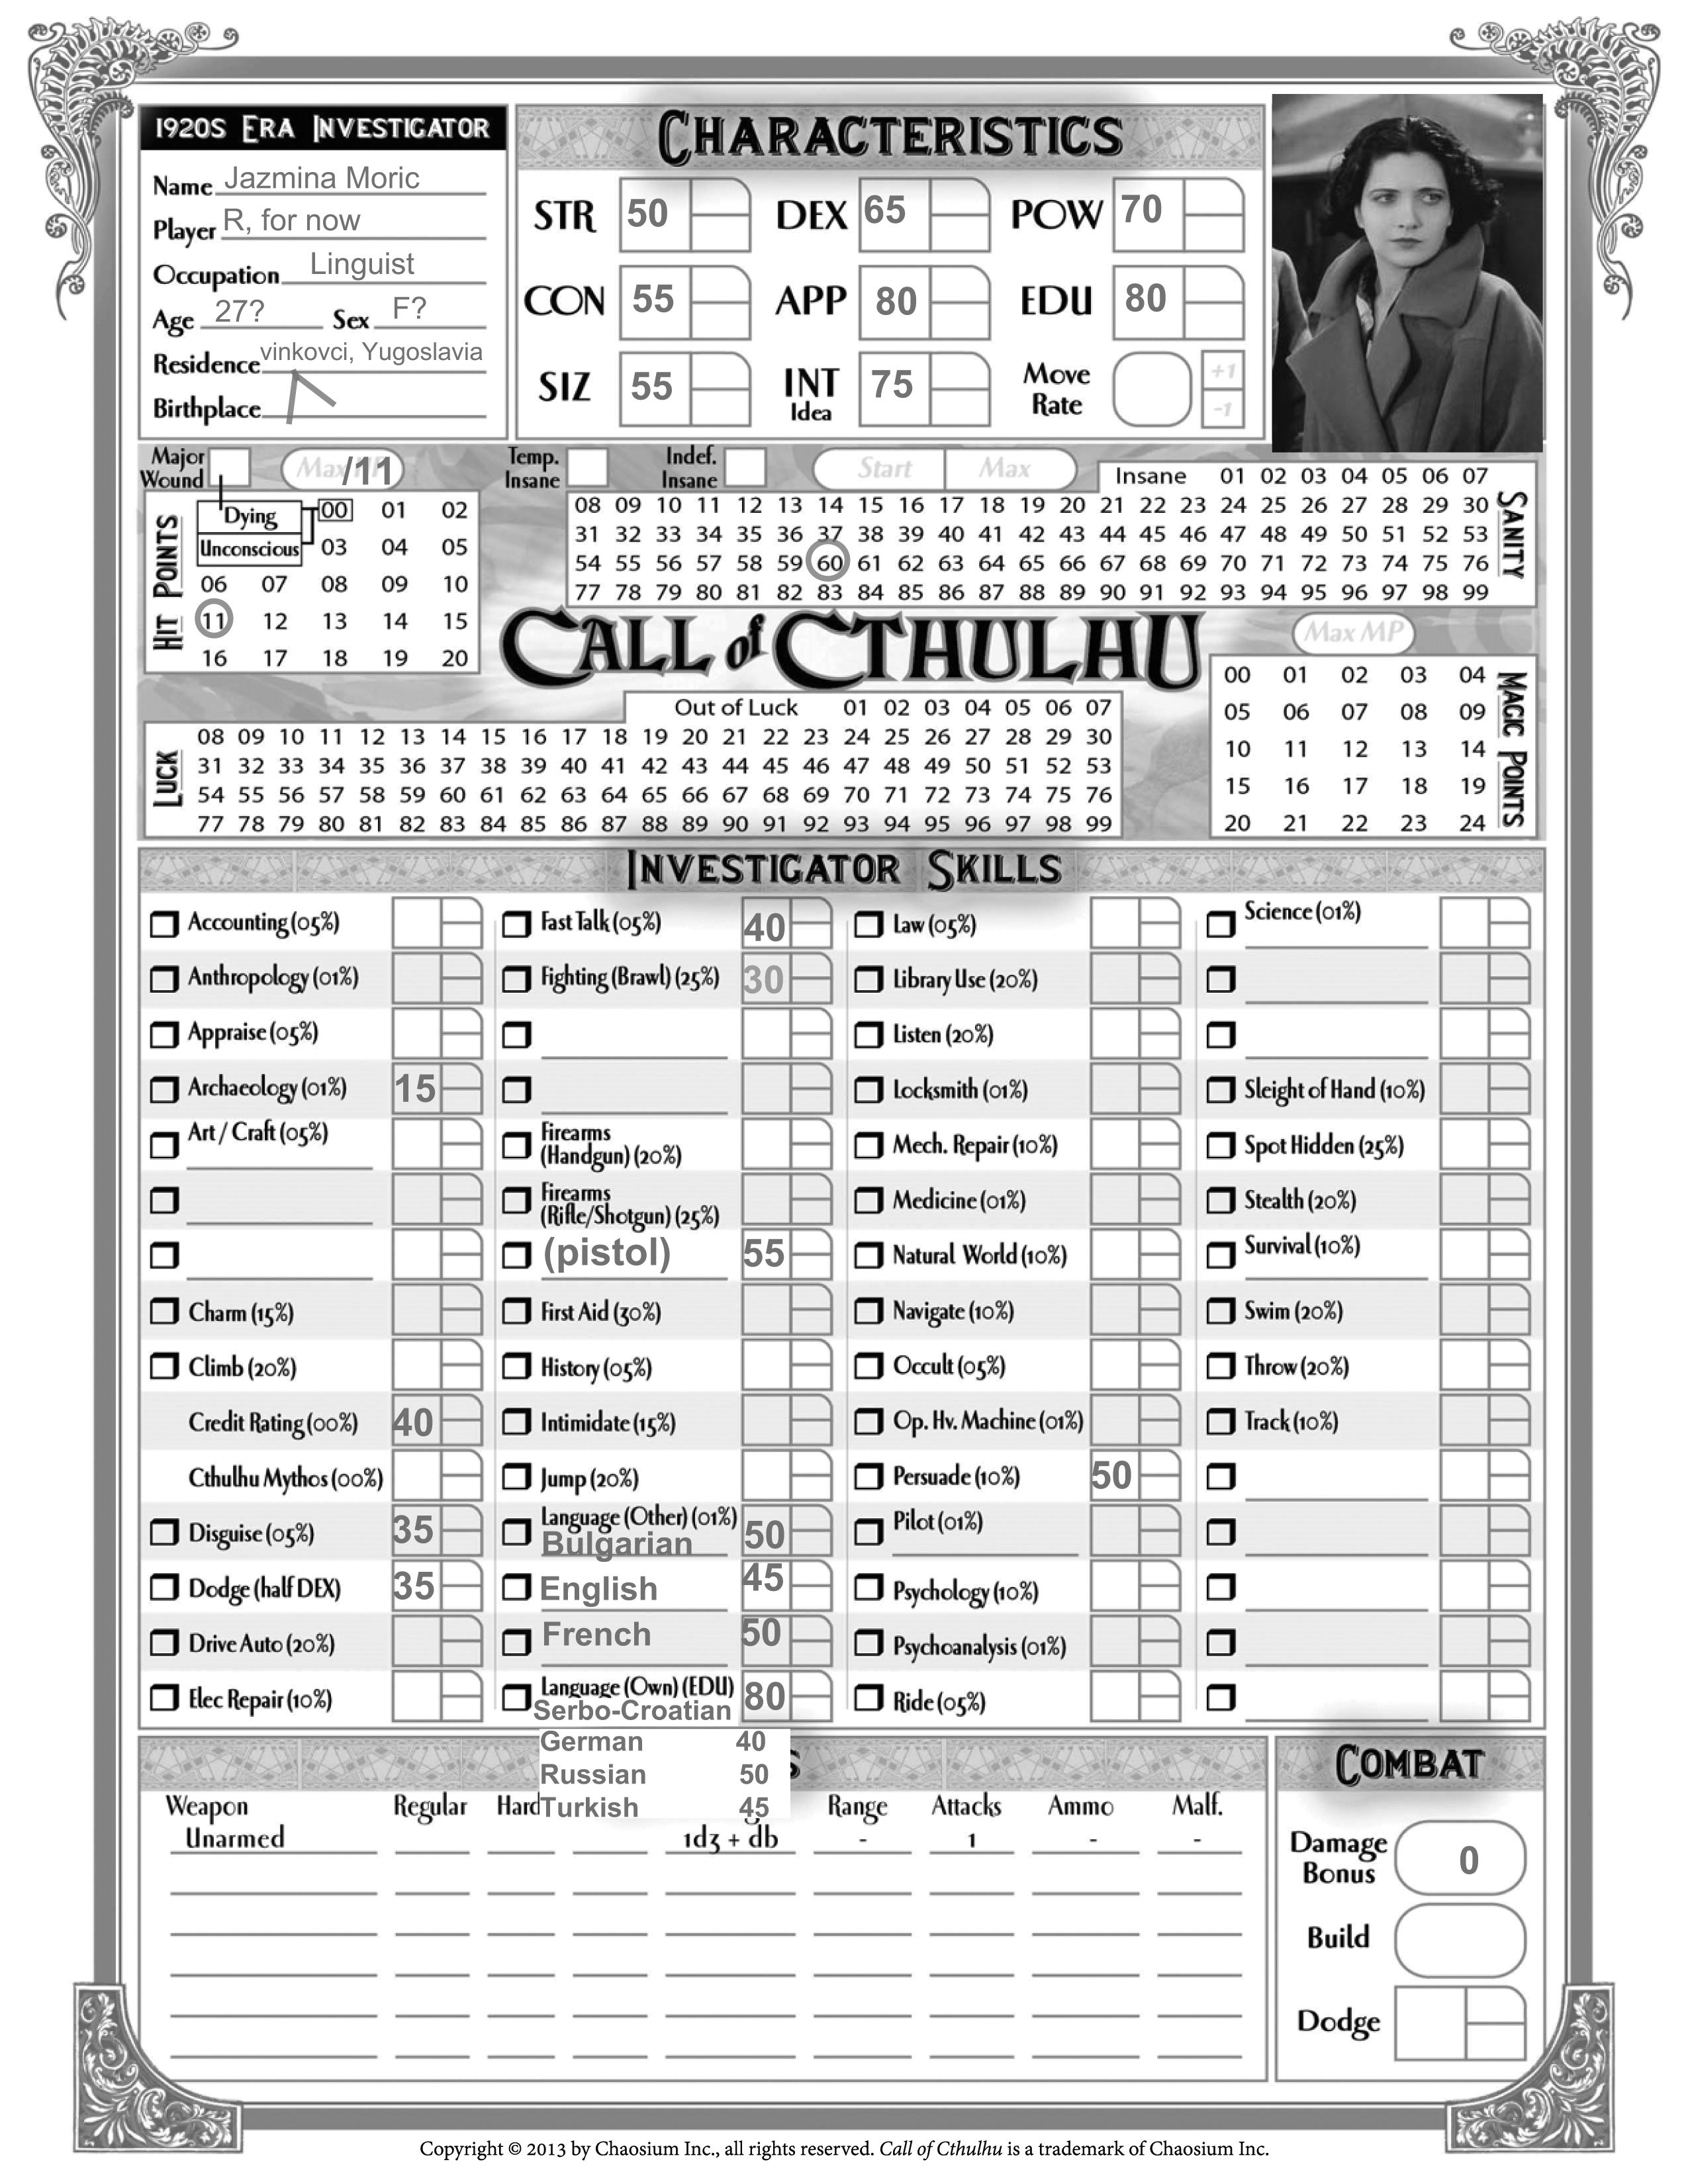 Jazmina-Moric_Character_Sheet-Call_of_Cthulhu-7th-PAGE1.jpg